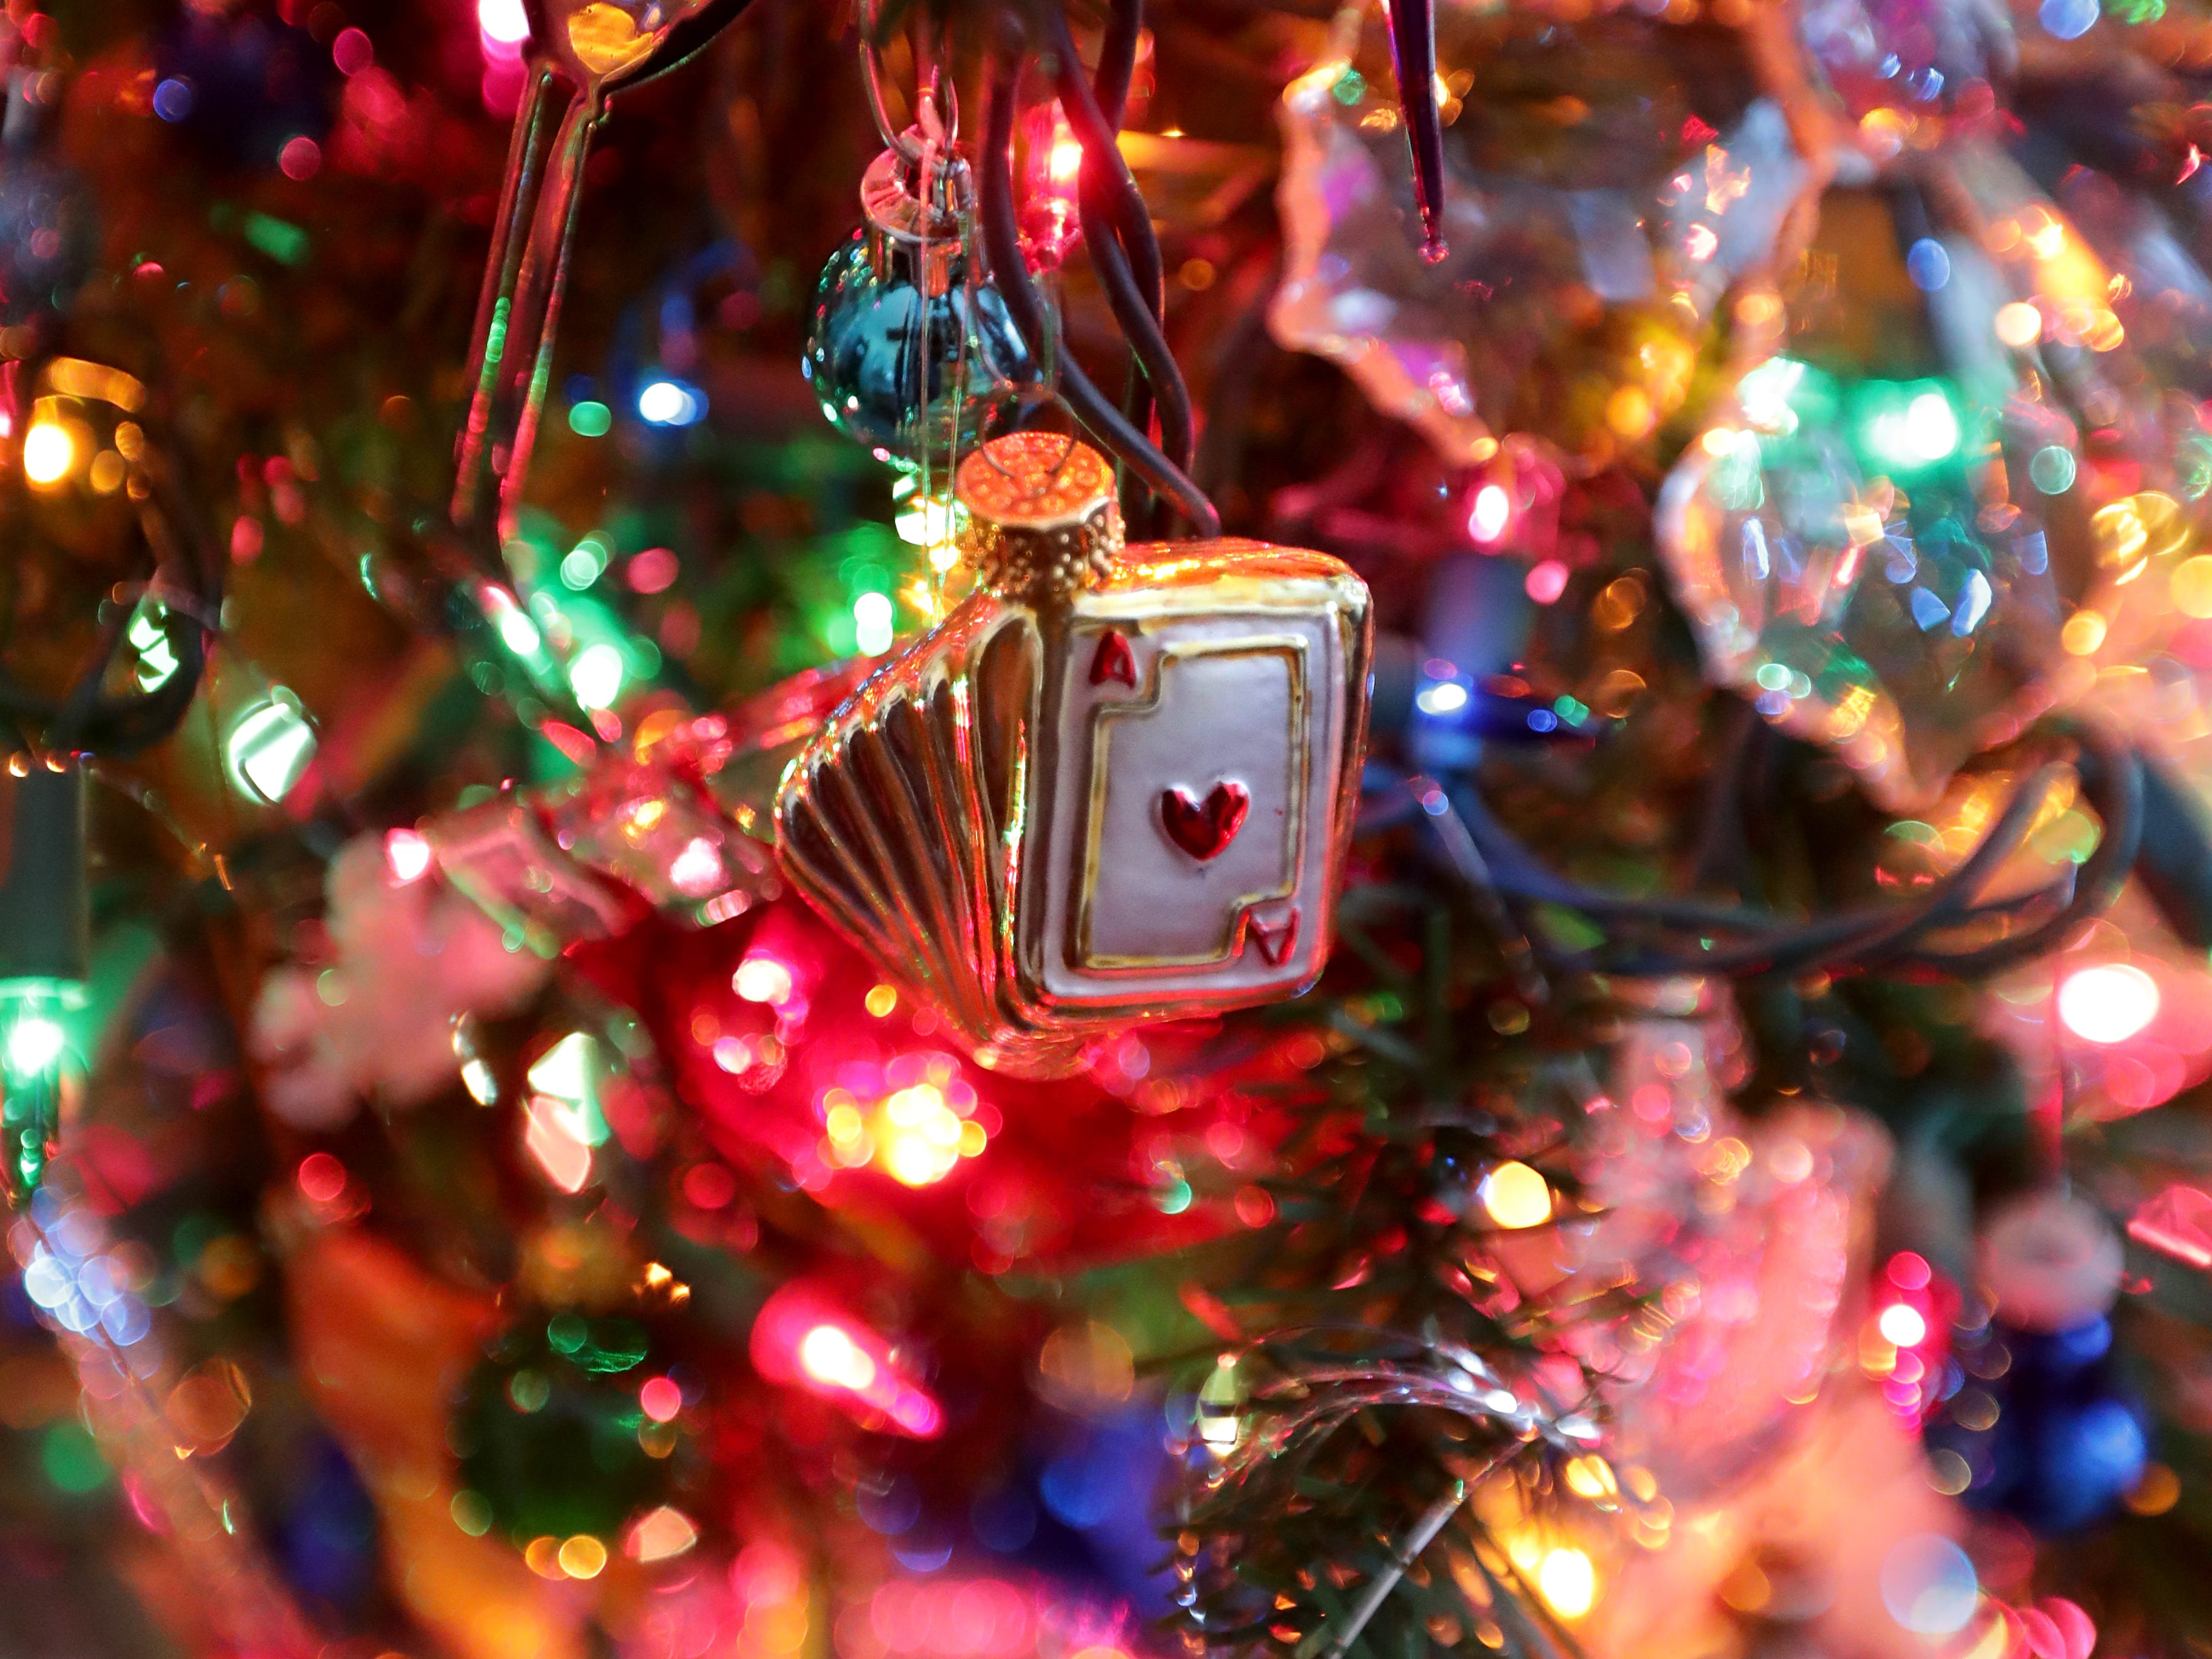 A small deck of cards ornament hangs on Kim Harrison's Christmas tree.